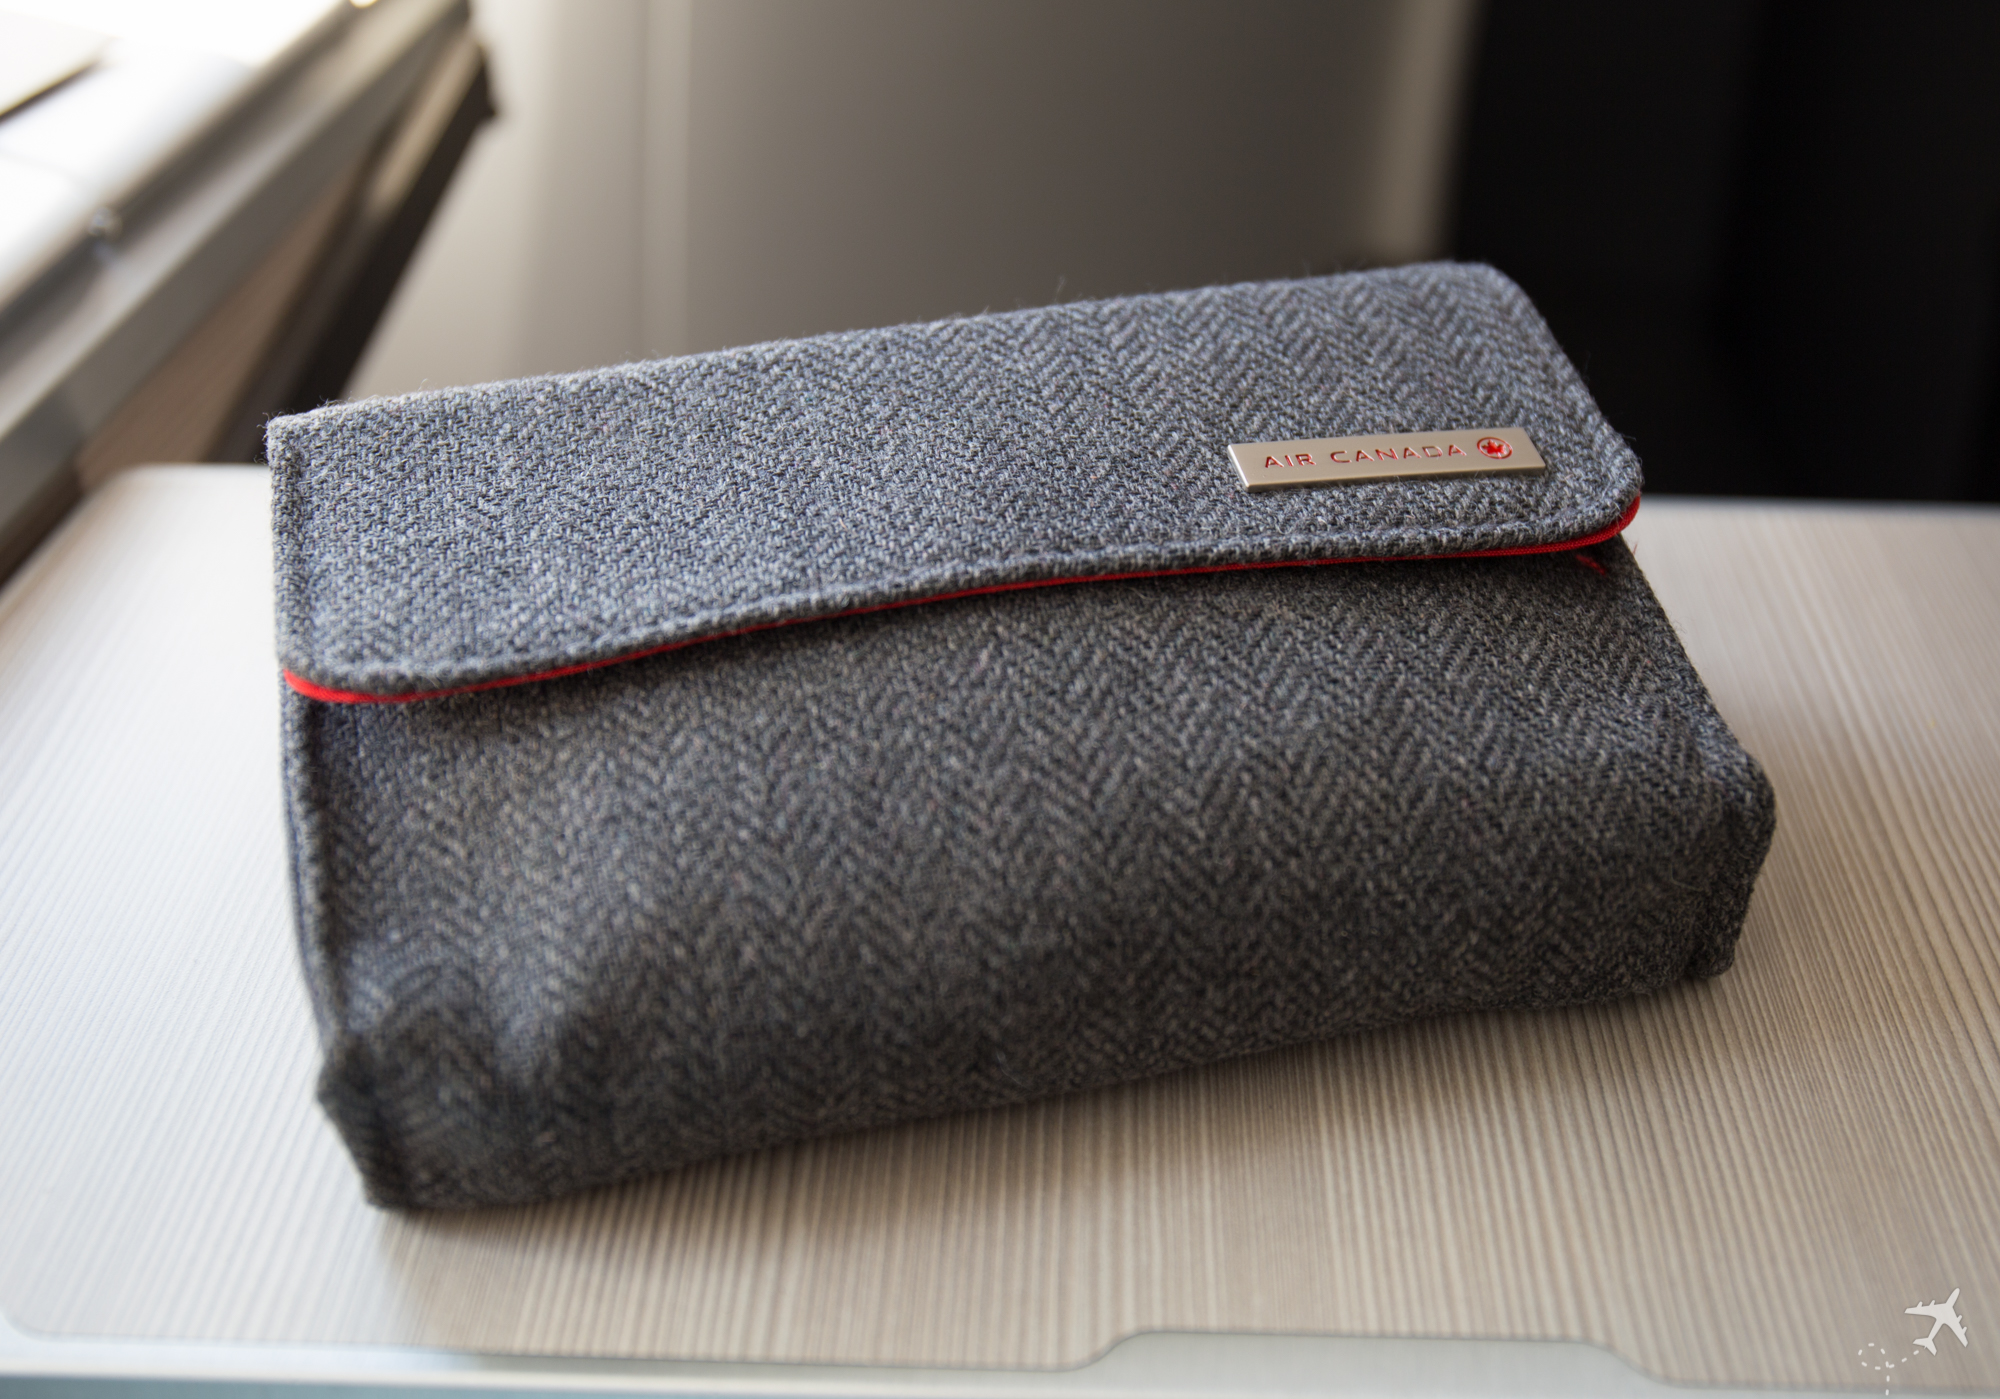 Air Canada Boeing 787-9 Business Class Amenity Kit